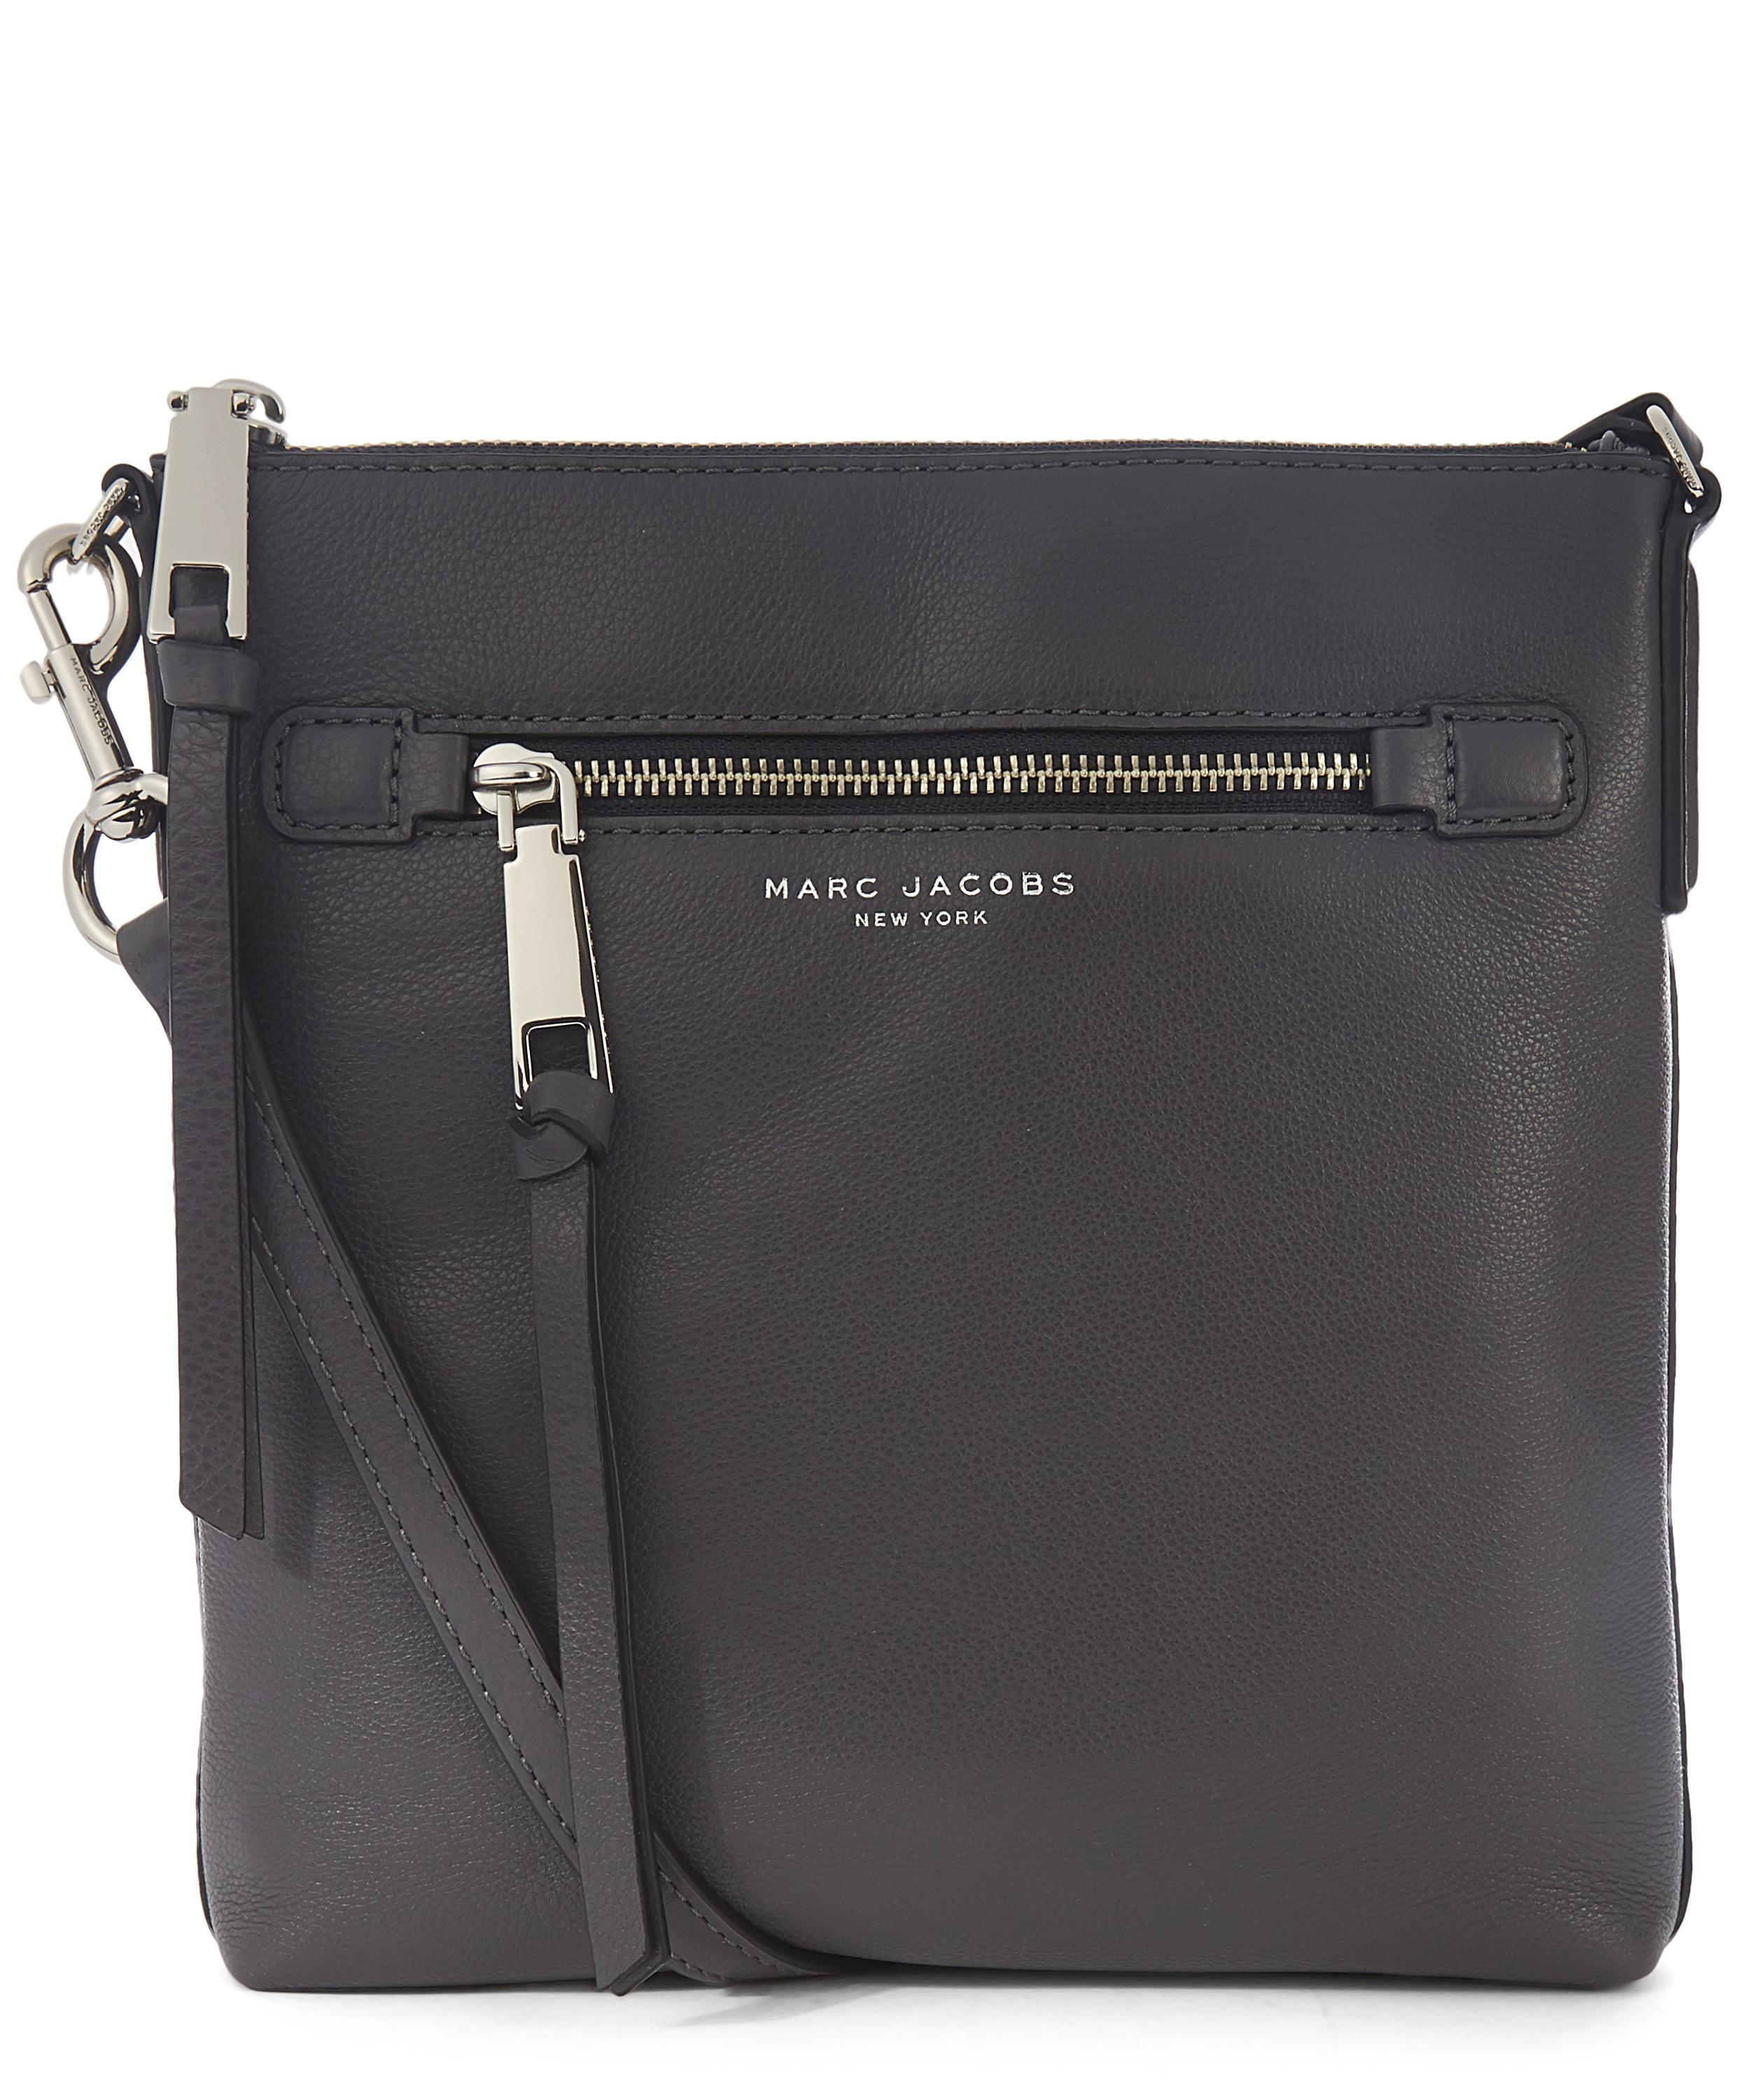 030d41eed Marc Jacobs Recruit North-south Crossbody Bag in Black - Lyst